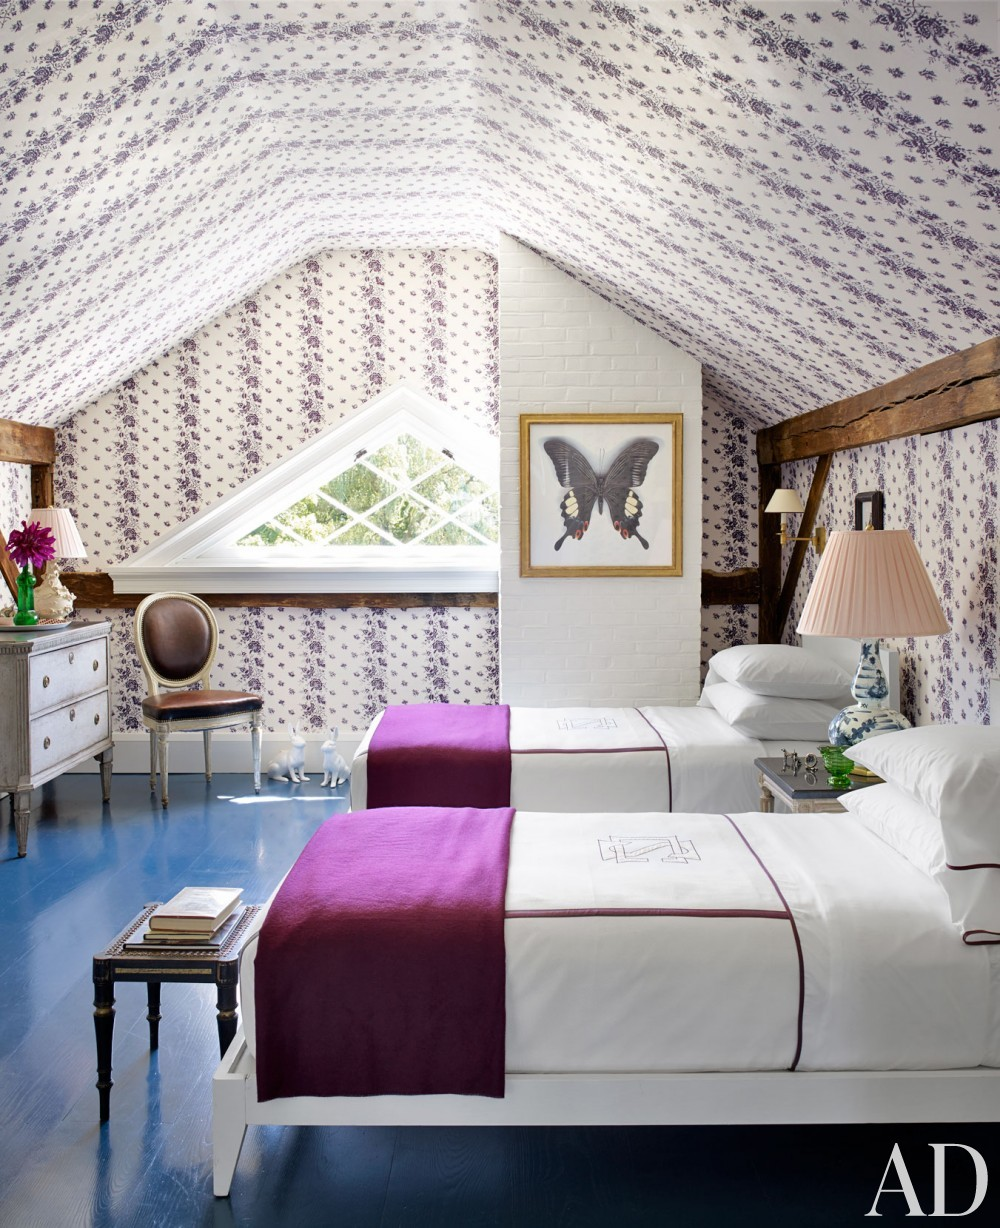 Traditional Bedroom by Harry Heissmann and Jonathon Parisen in Hudson Valley, NY